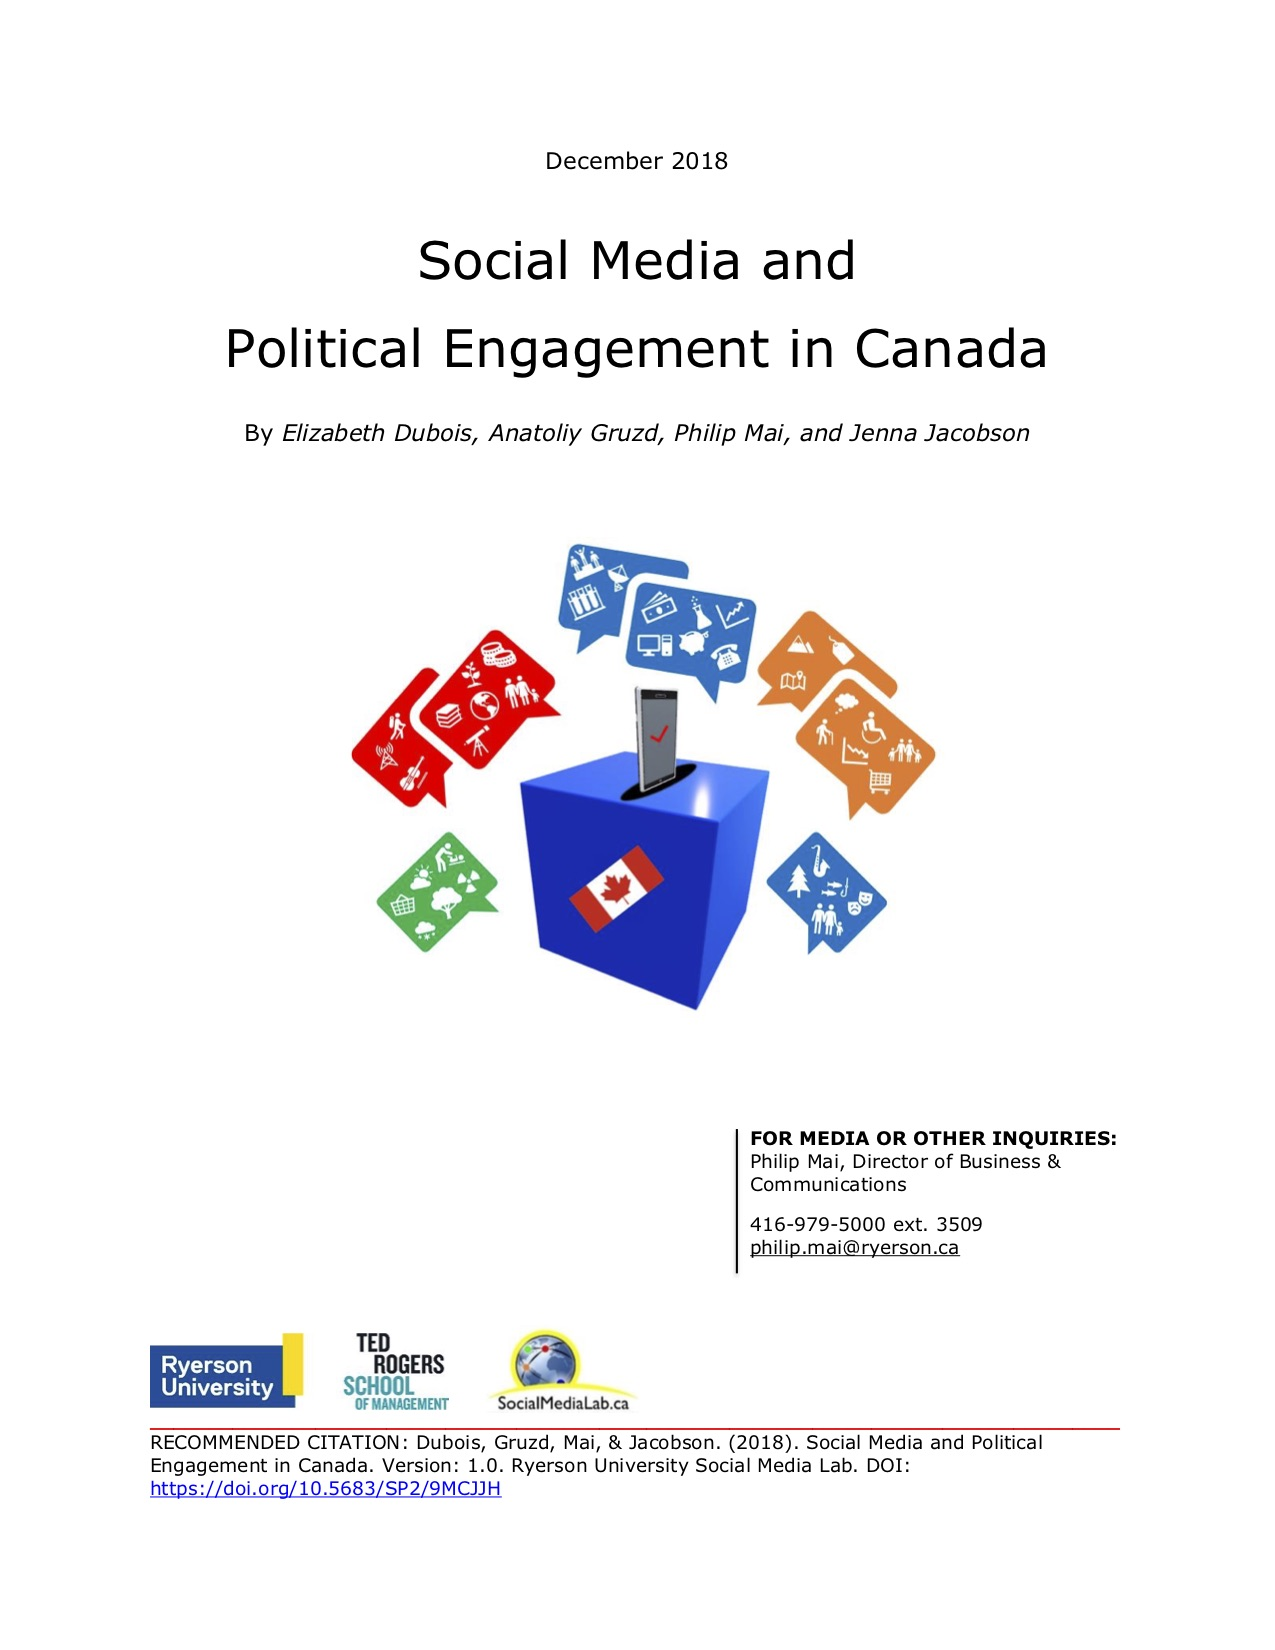 Social Media and Political Engagement in Canada